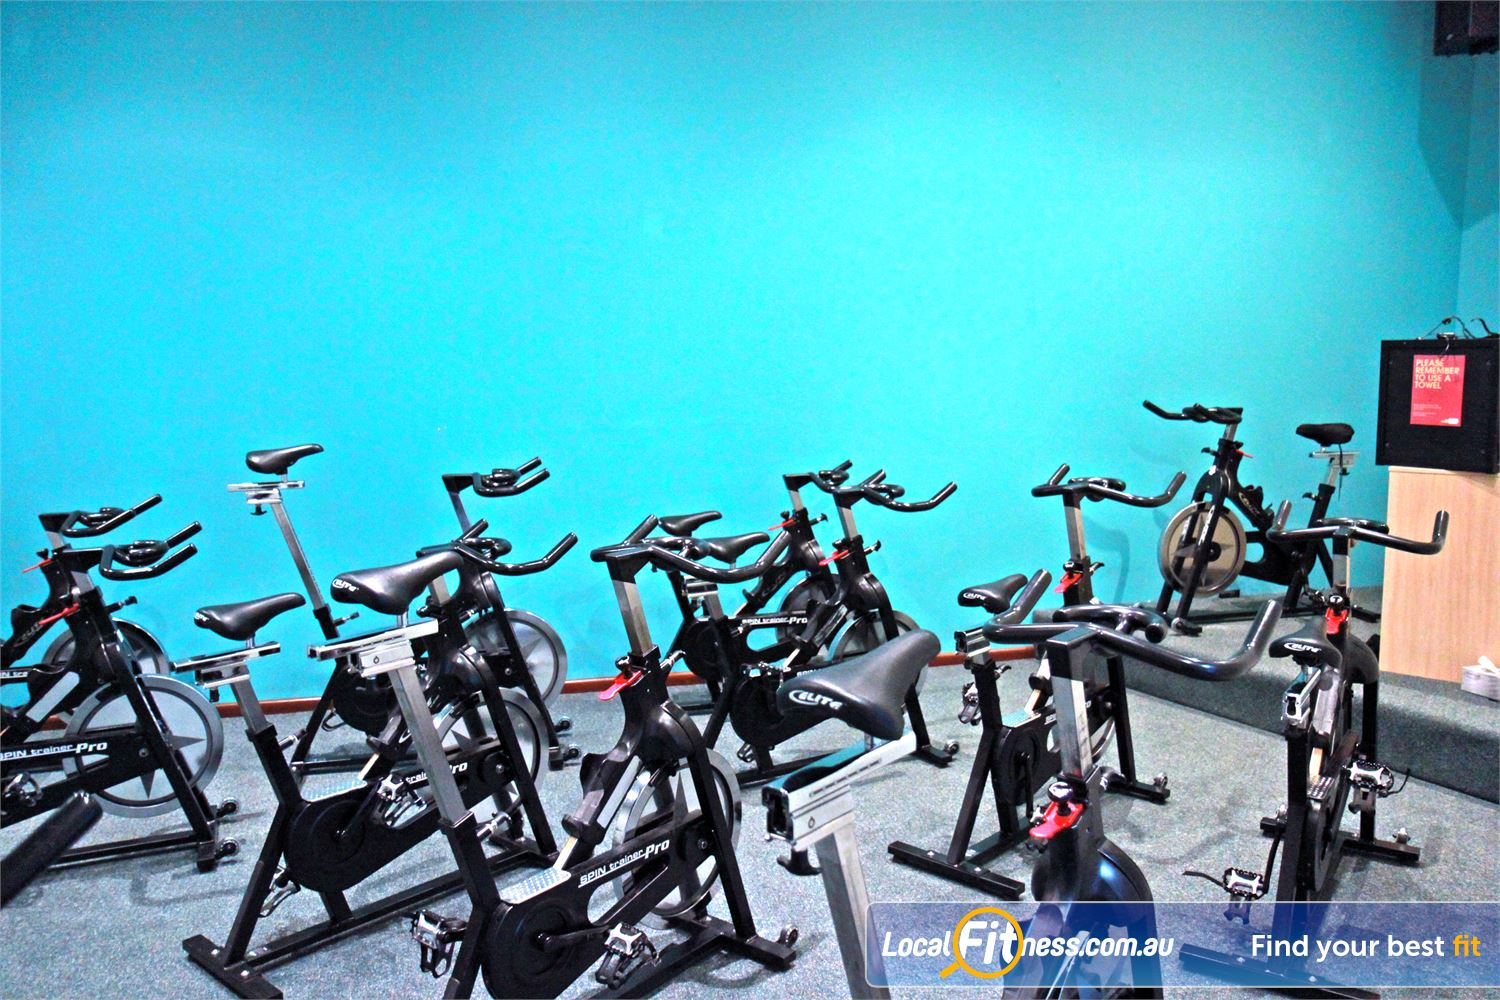 Fernwood Fitness Near Springwood Dedicated Underwood spin cycle studio.